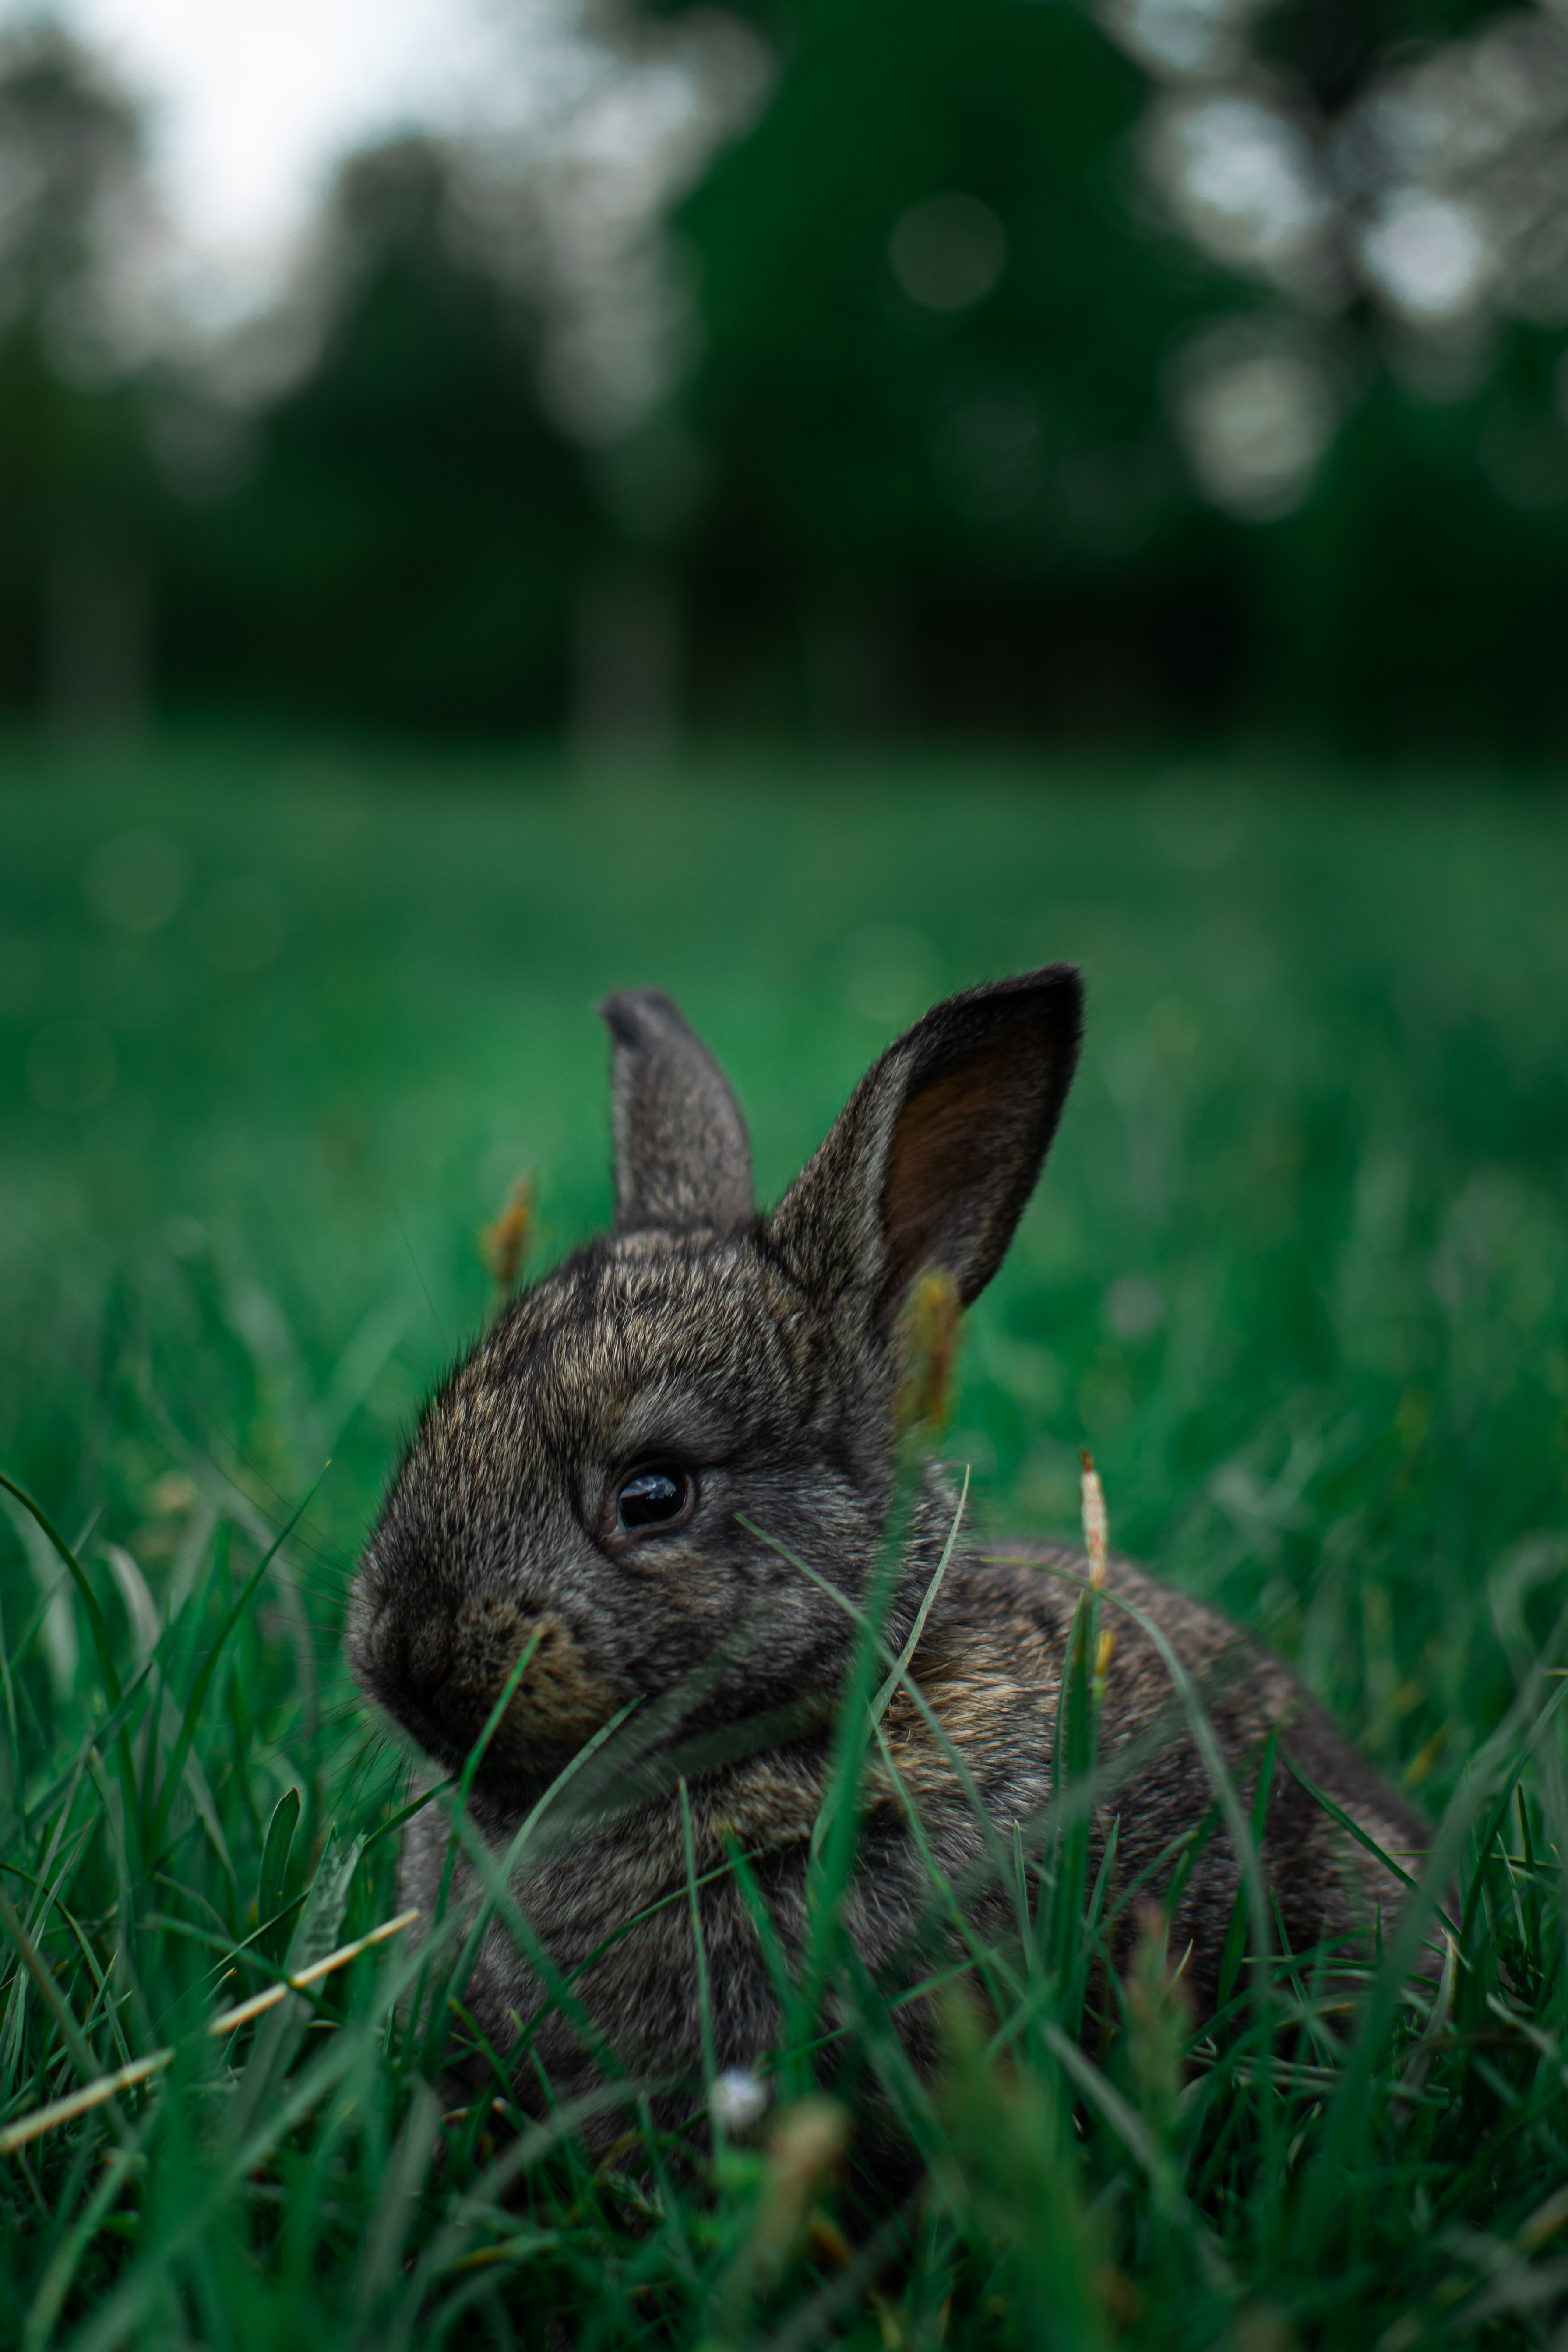 99249 download wallpaper Animals, Rabbit, Animal, Grass screensavers and pictures for free